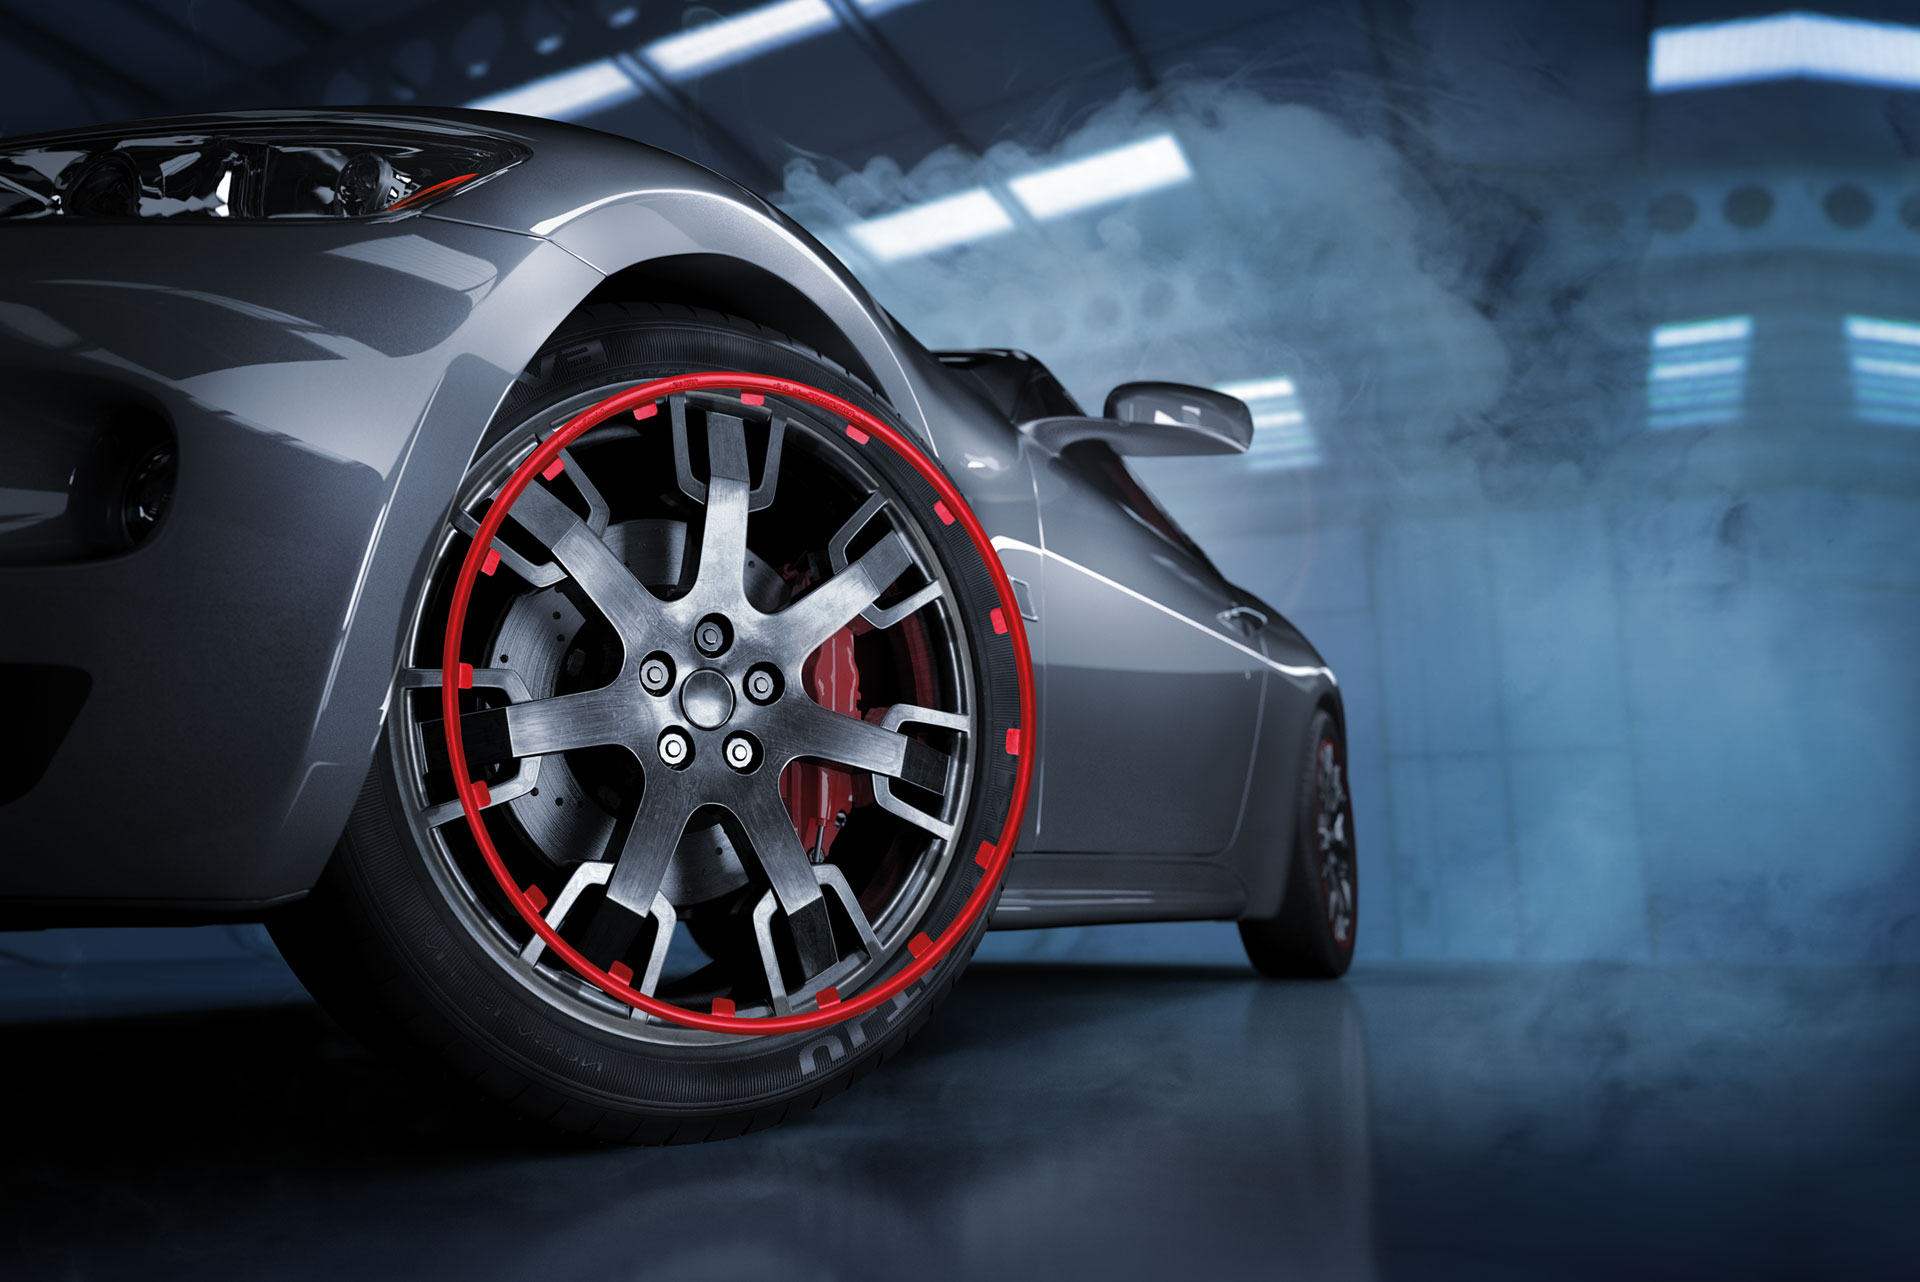 Car Rims Orlando, See Our Products, Car Rims Orlando